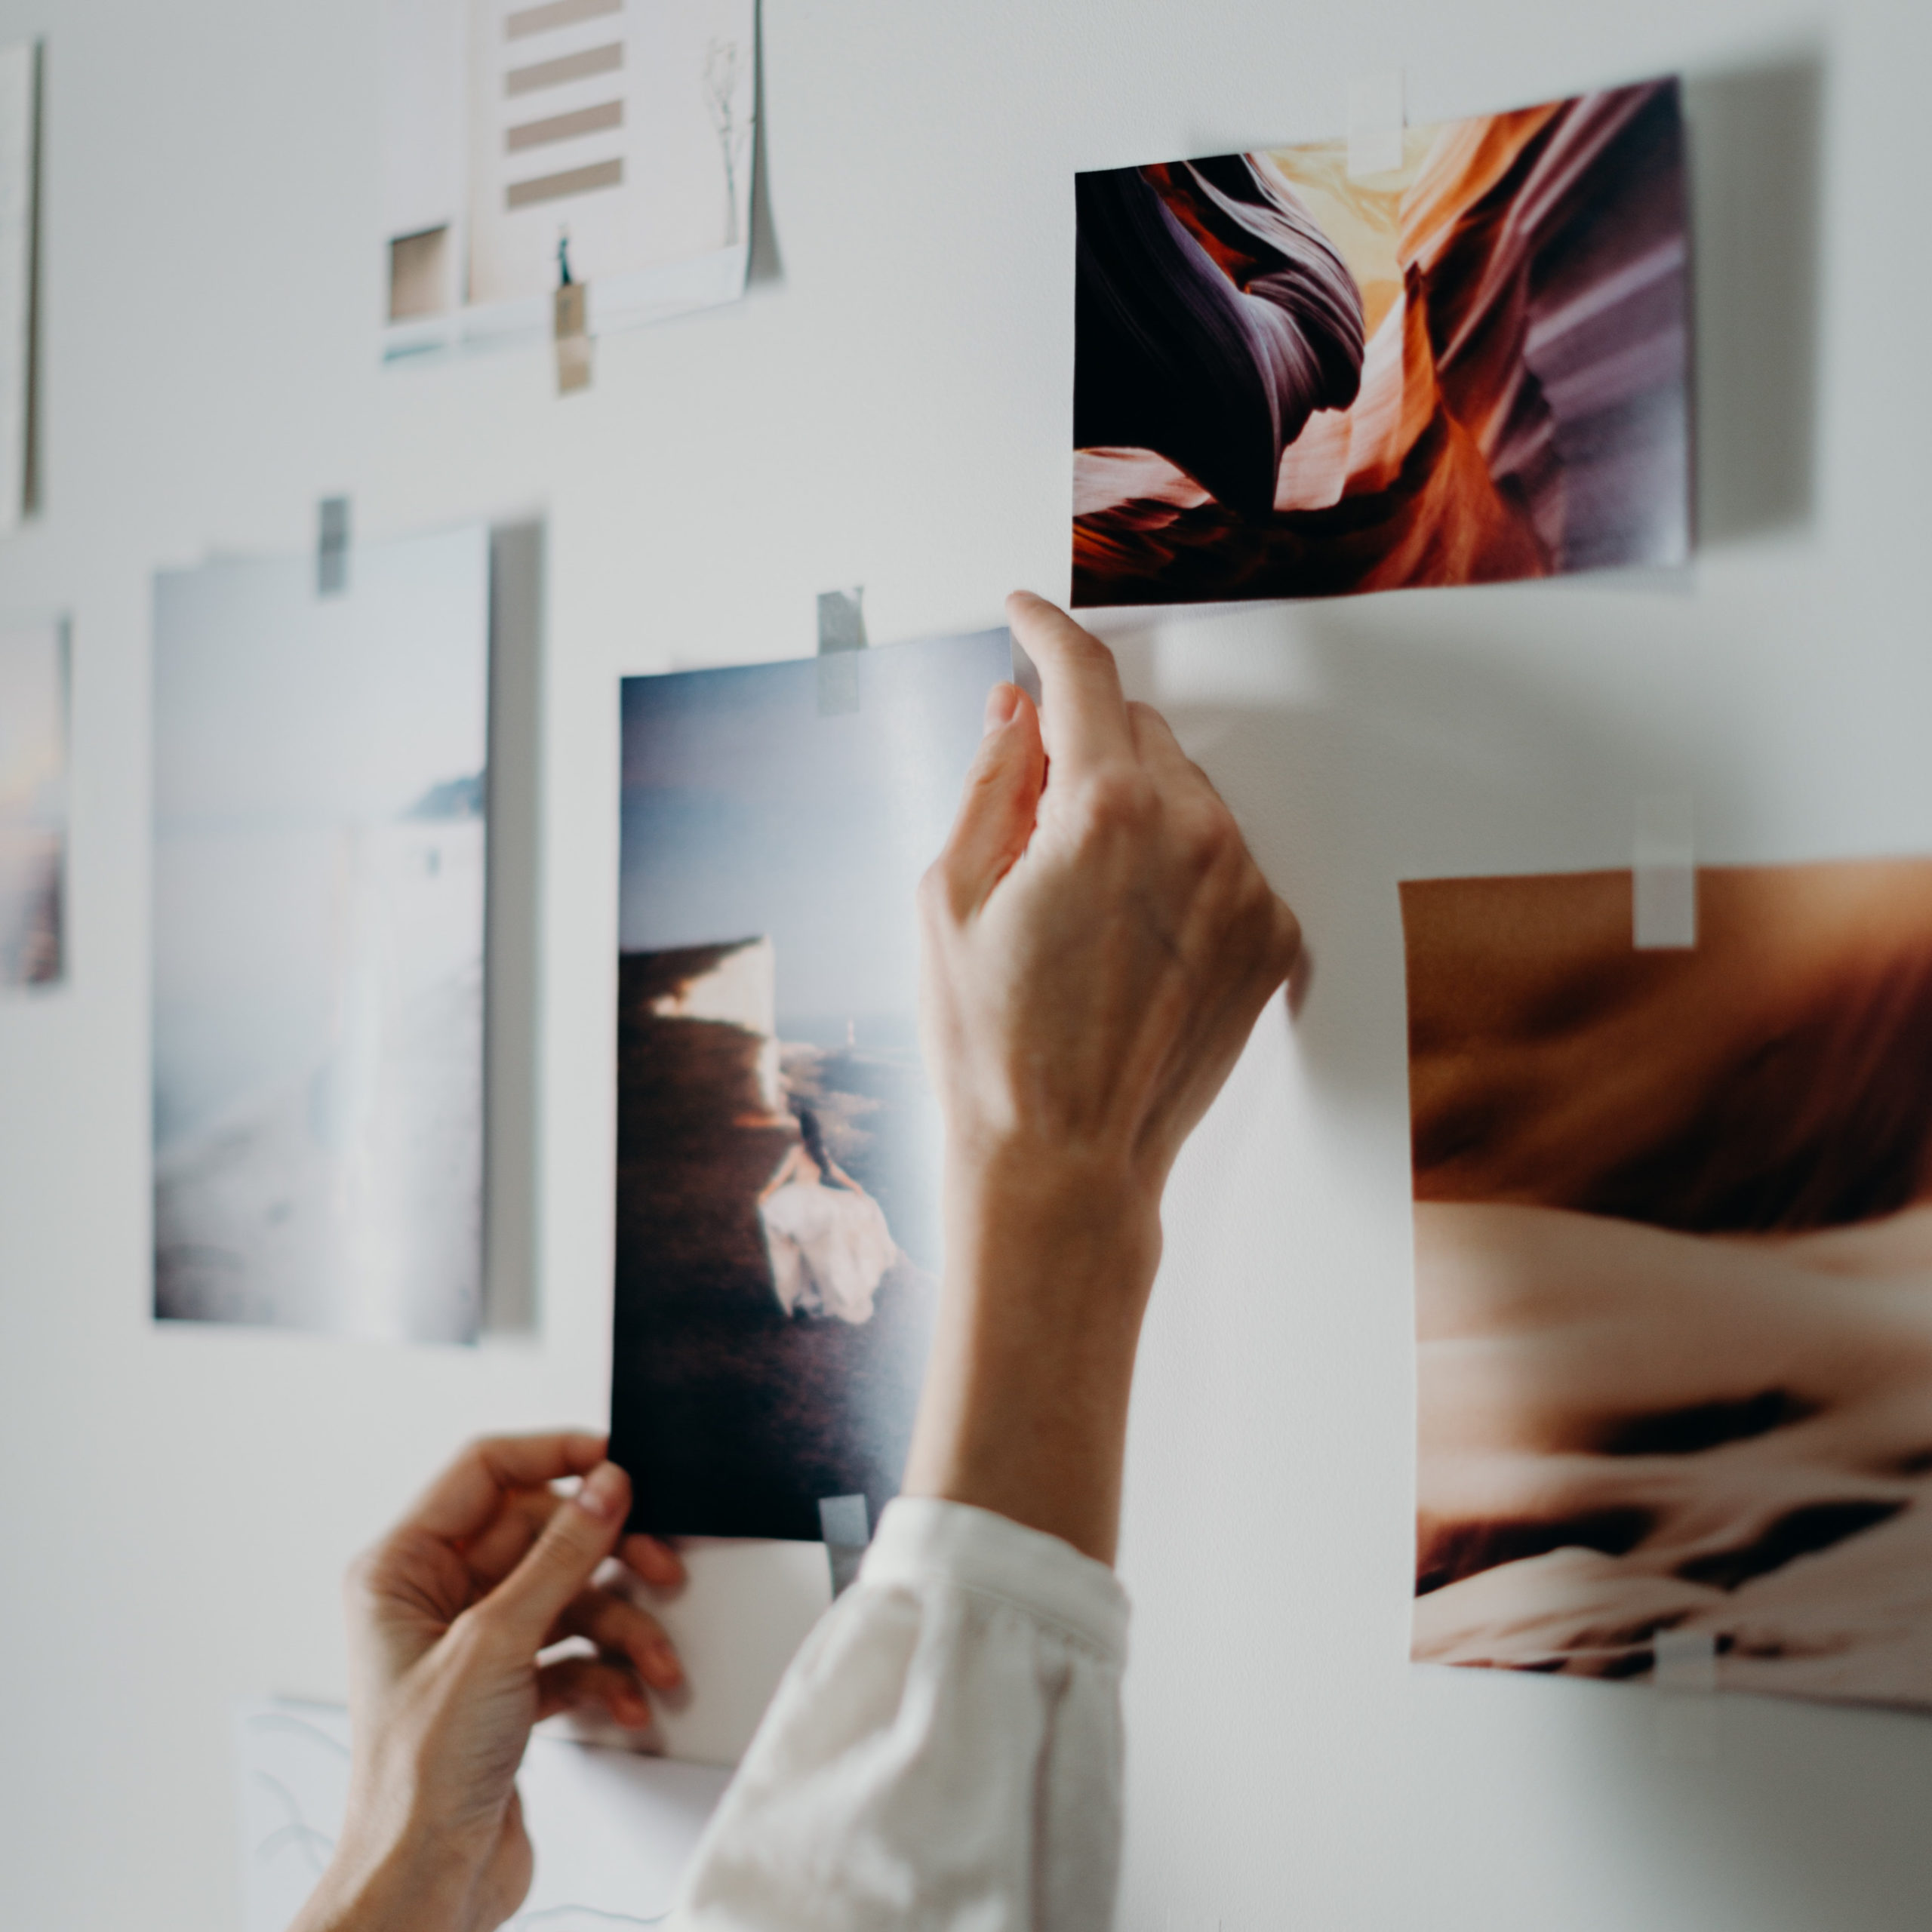 photo of person putting photos on a wall with washi tape